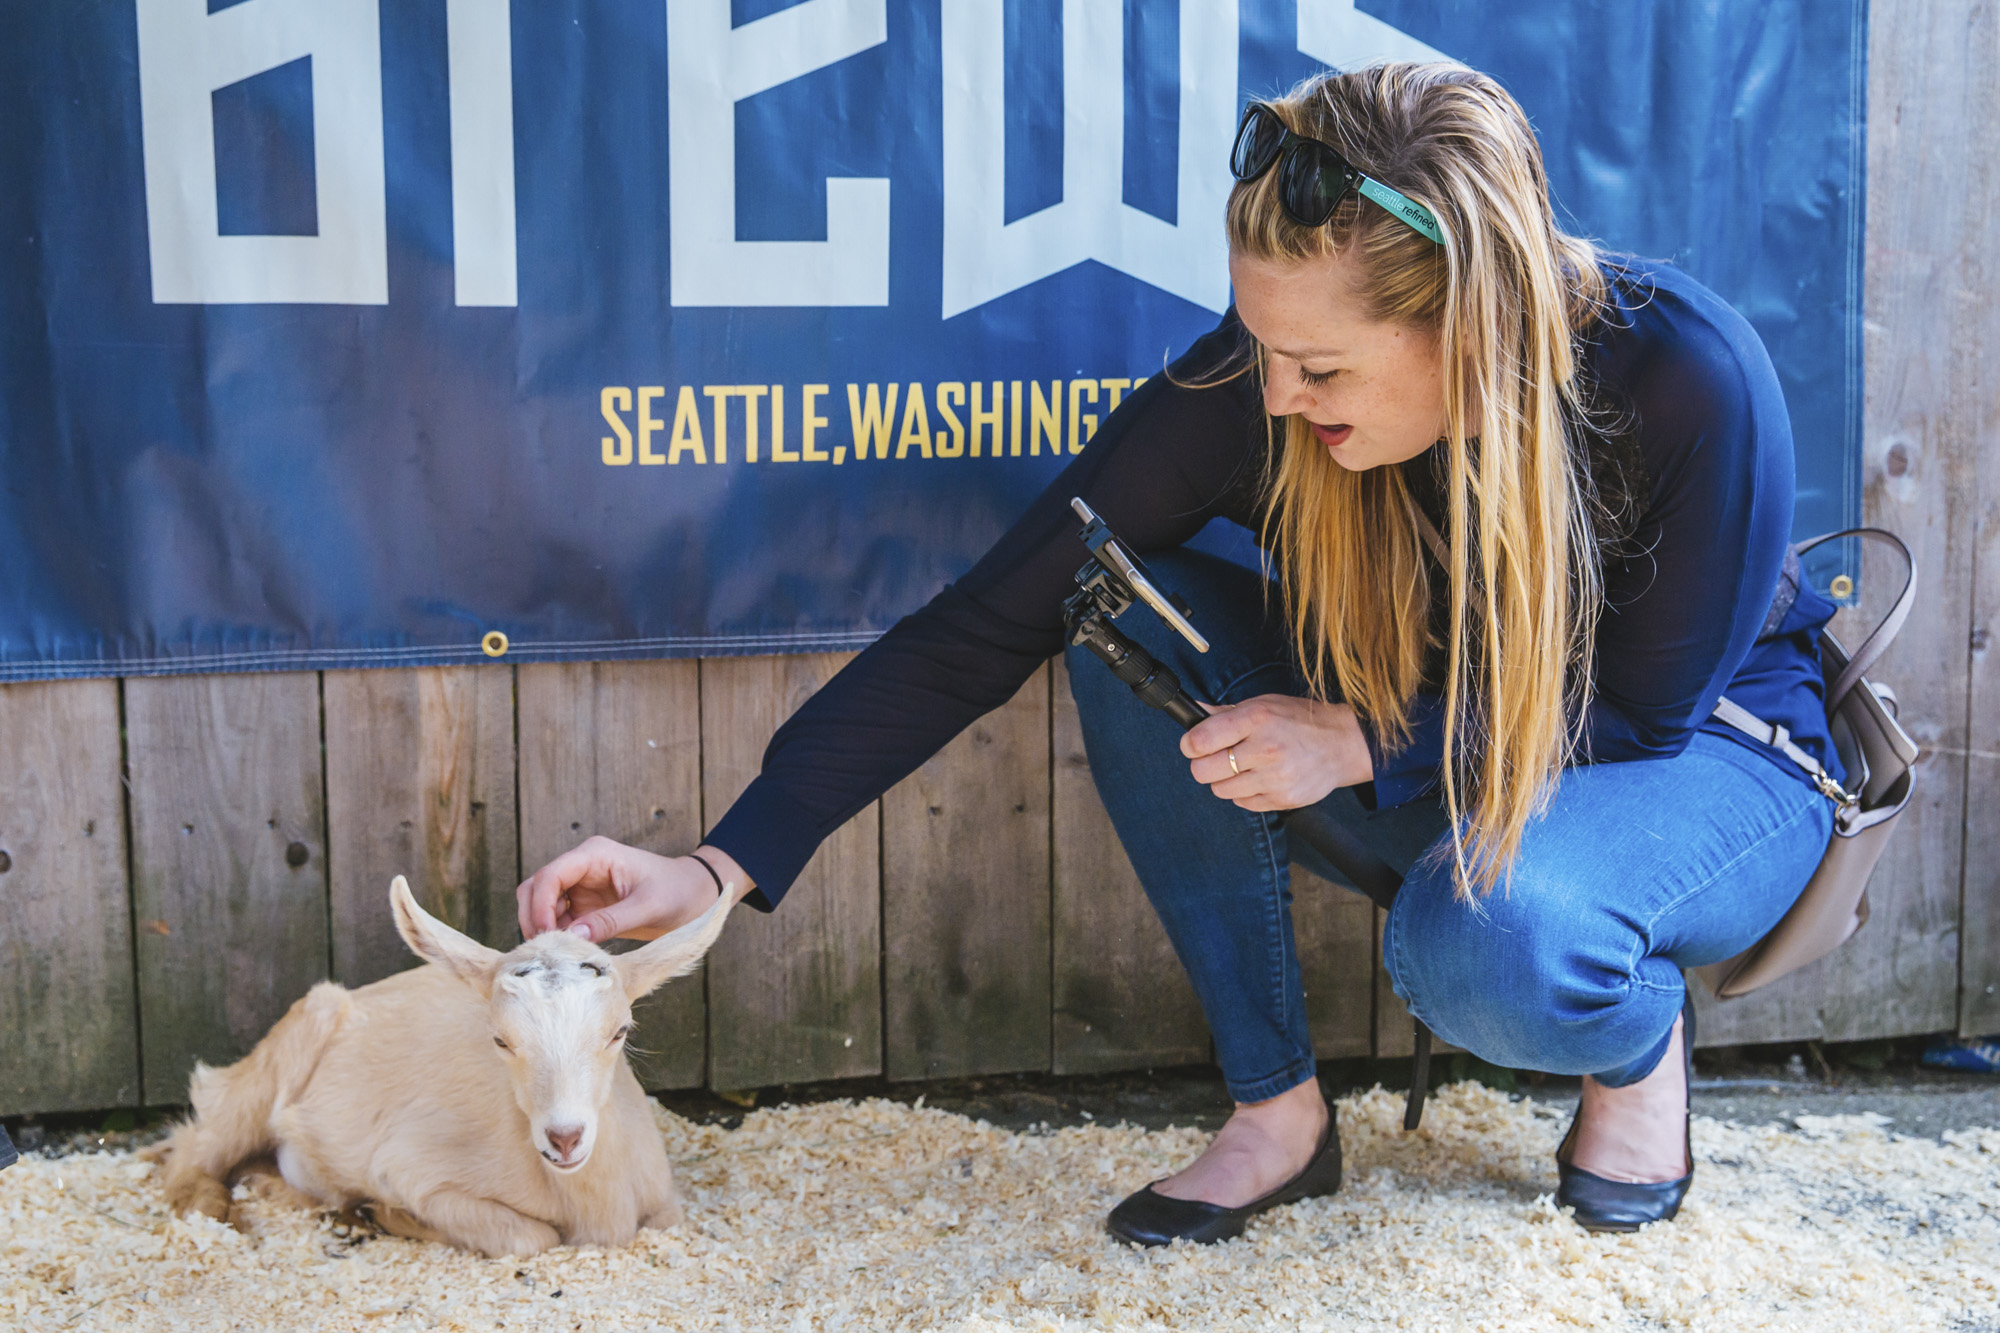 Attendees sip craft beer and pet baby rescue goats at the third annual Baby Goats and Brews fundraiser at Reuben's Brews in Ballard. $1 from every beer, growler, and flight sold goes to Puget Sound Goat Rescue. (Sunita Martini / Seattle Refined)